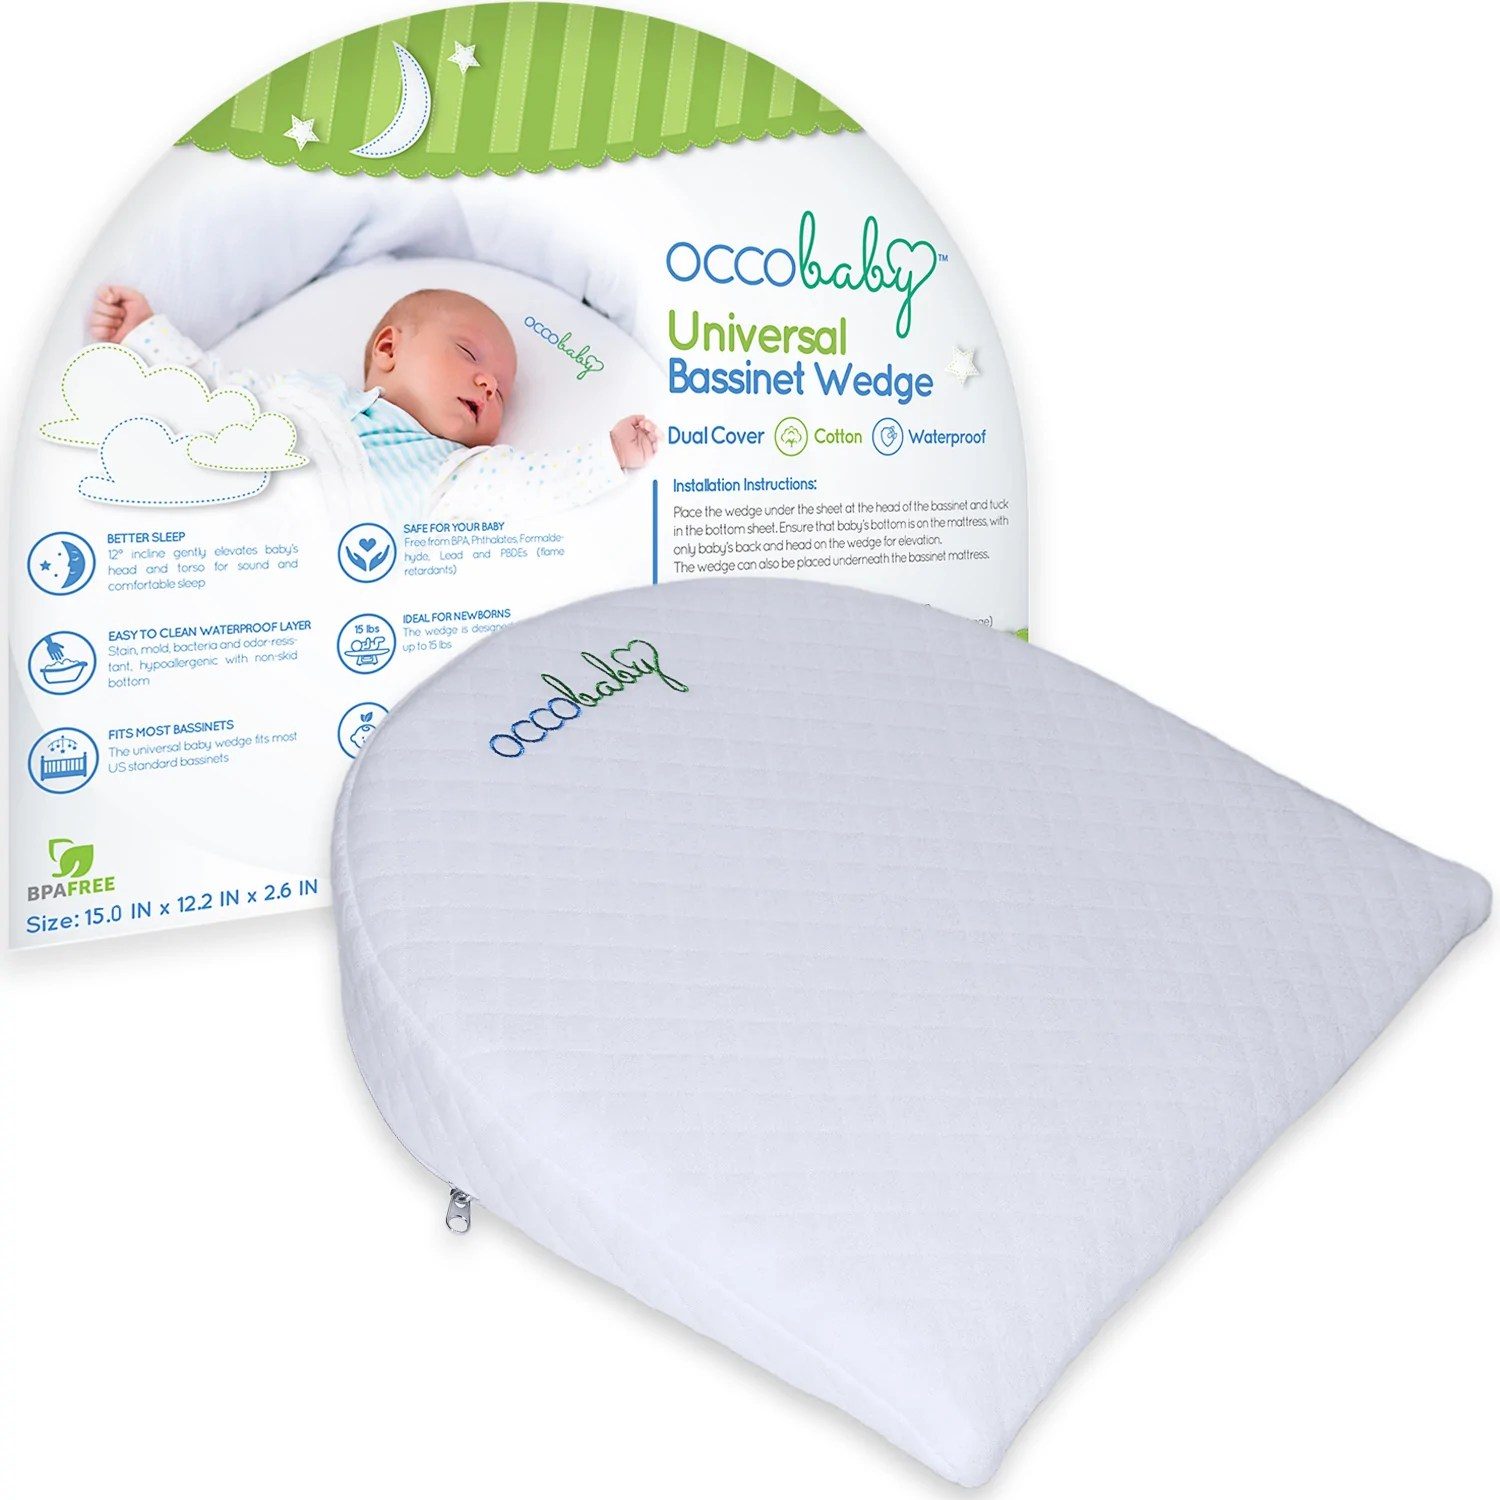 Newborn Bassinet Reflux Universal Bassinet Wedge Pillow